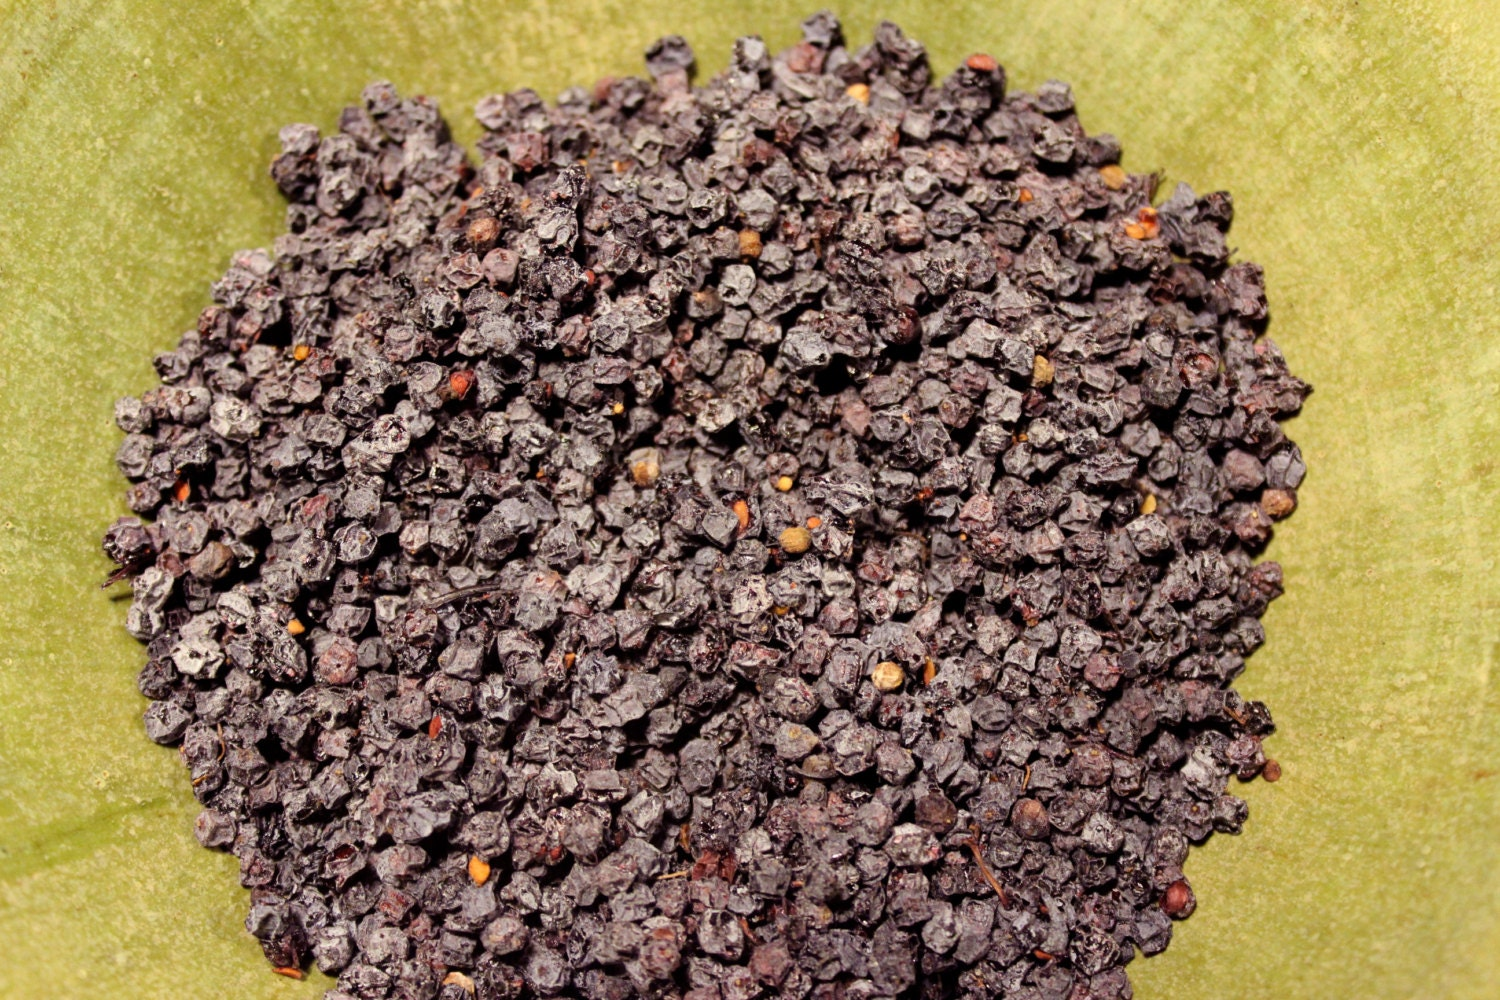 Buy dried elderberries